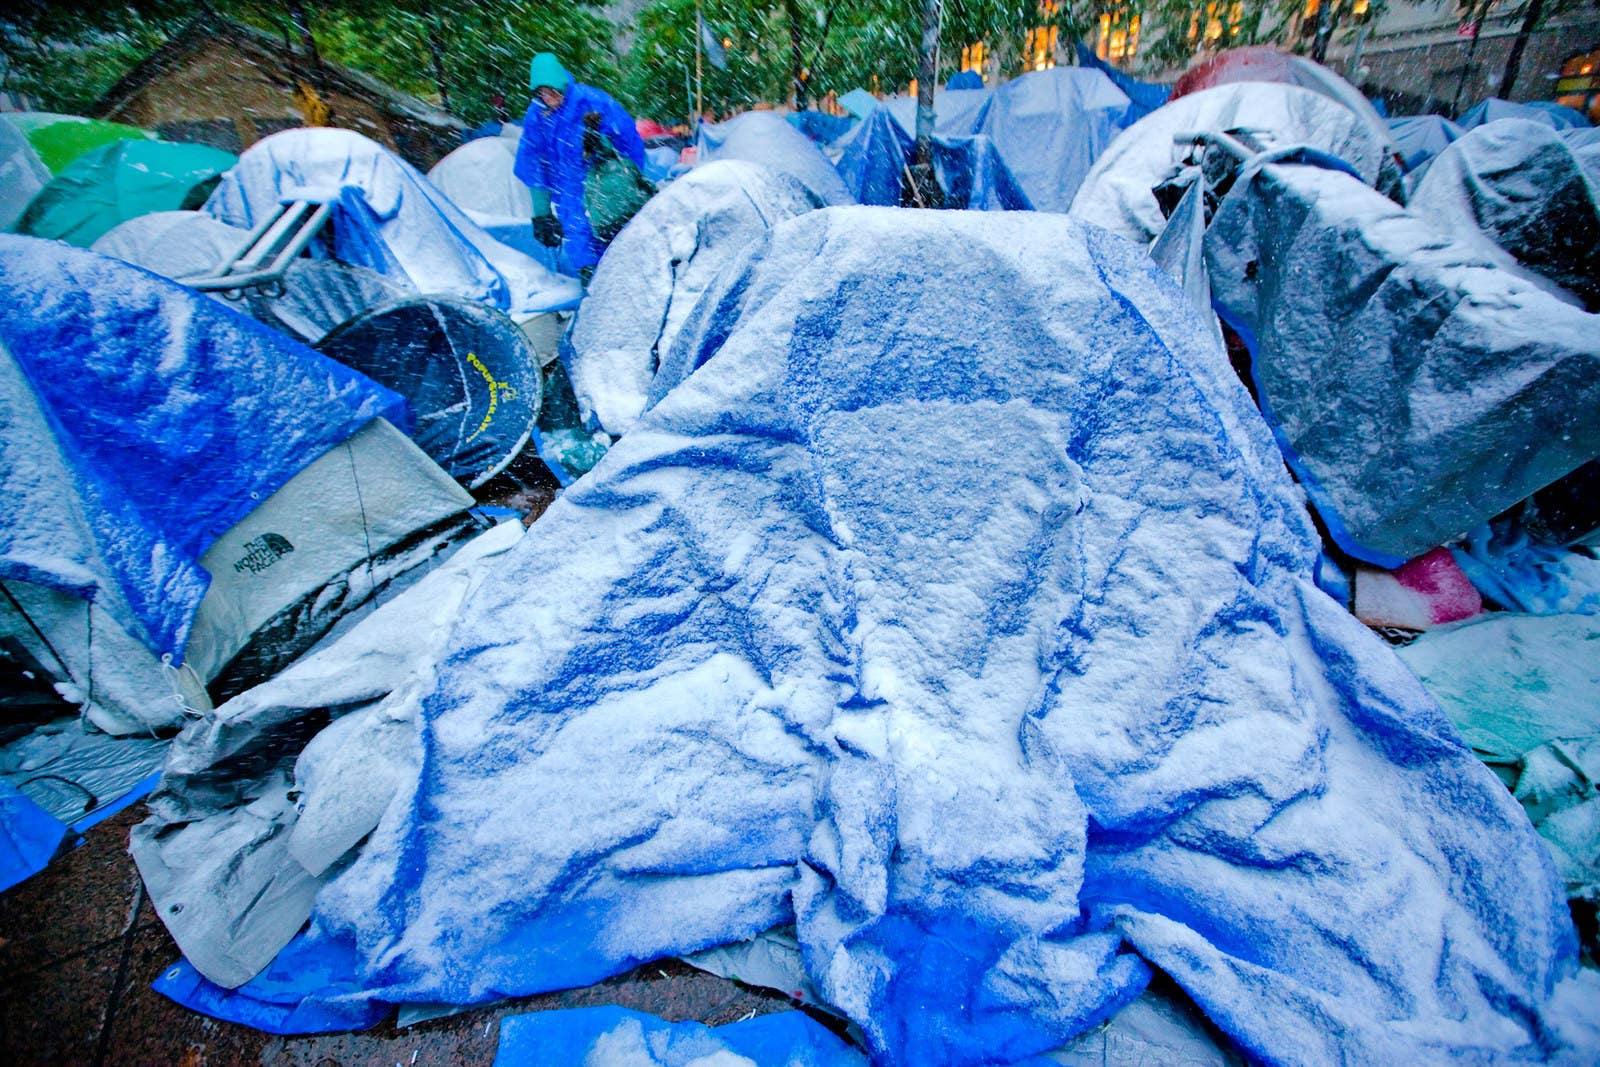 A Nor'easter storm coats the Zuccotti Park encampment on Oct. 29, 2011.